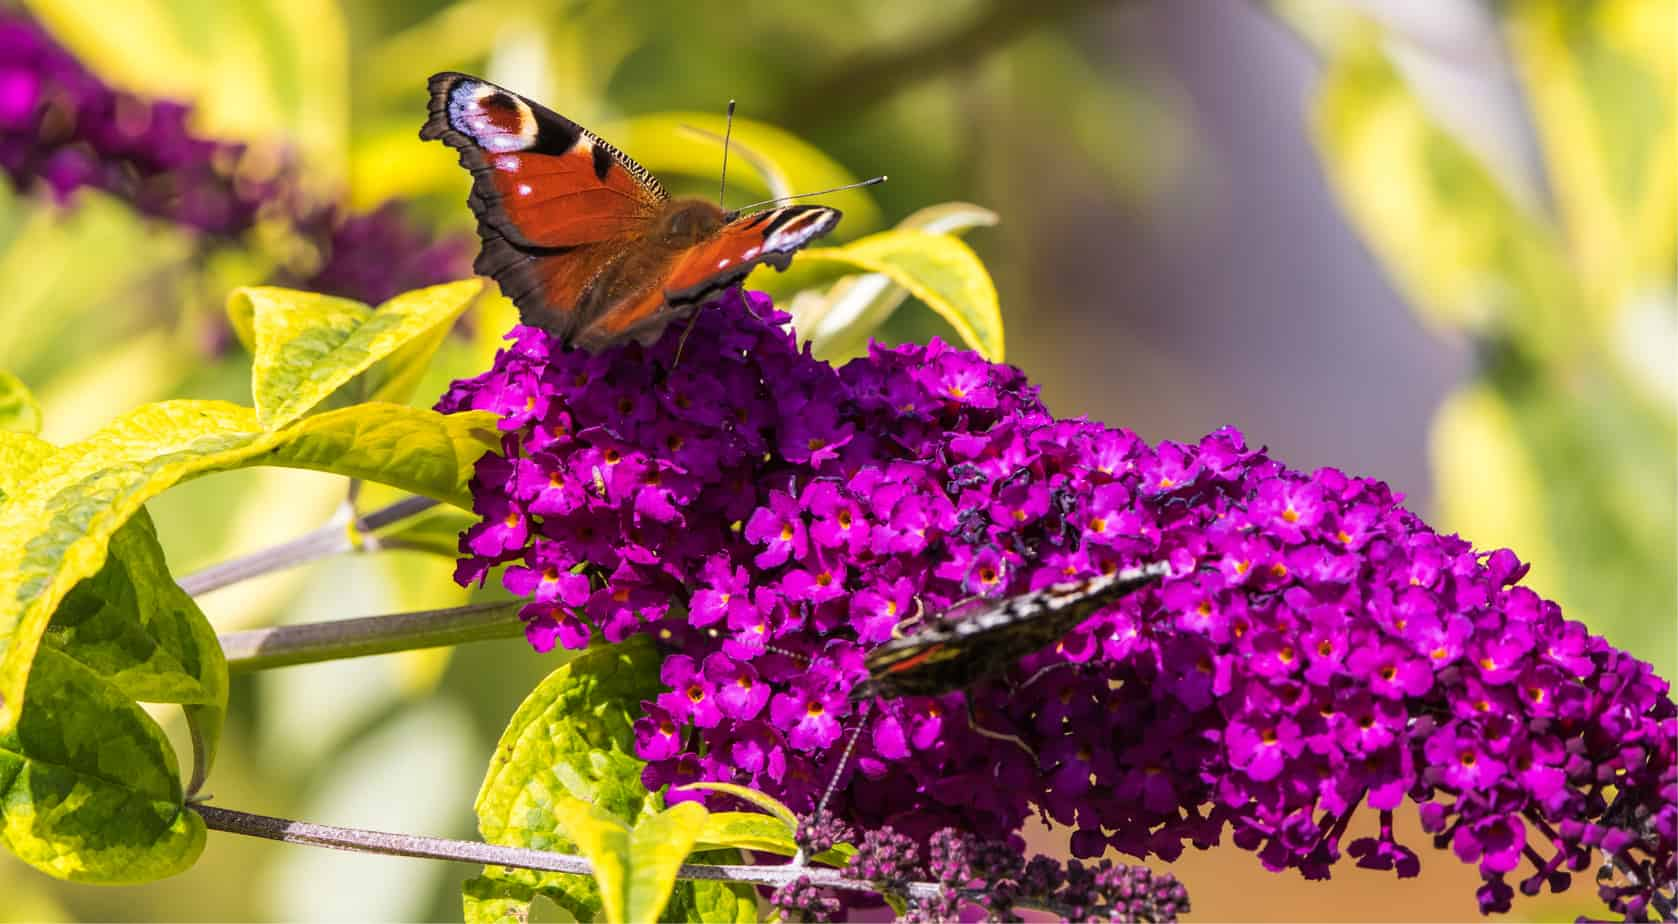 If you looking for the best plants for butterflies then we have 8 of our favourite plants to recommend from shrubs to herbs. Learn more now with these nectar plants